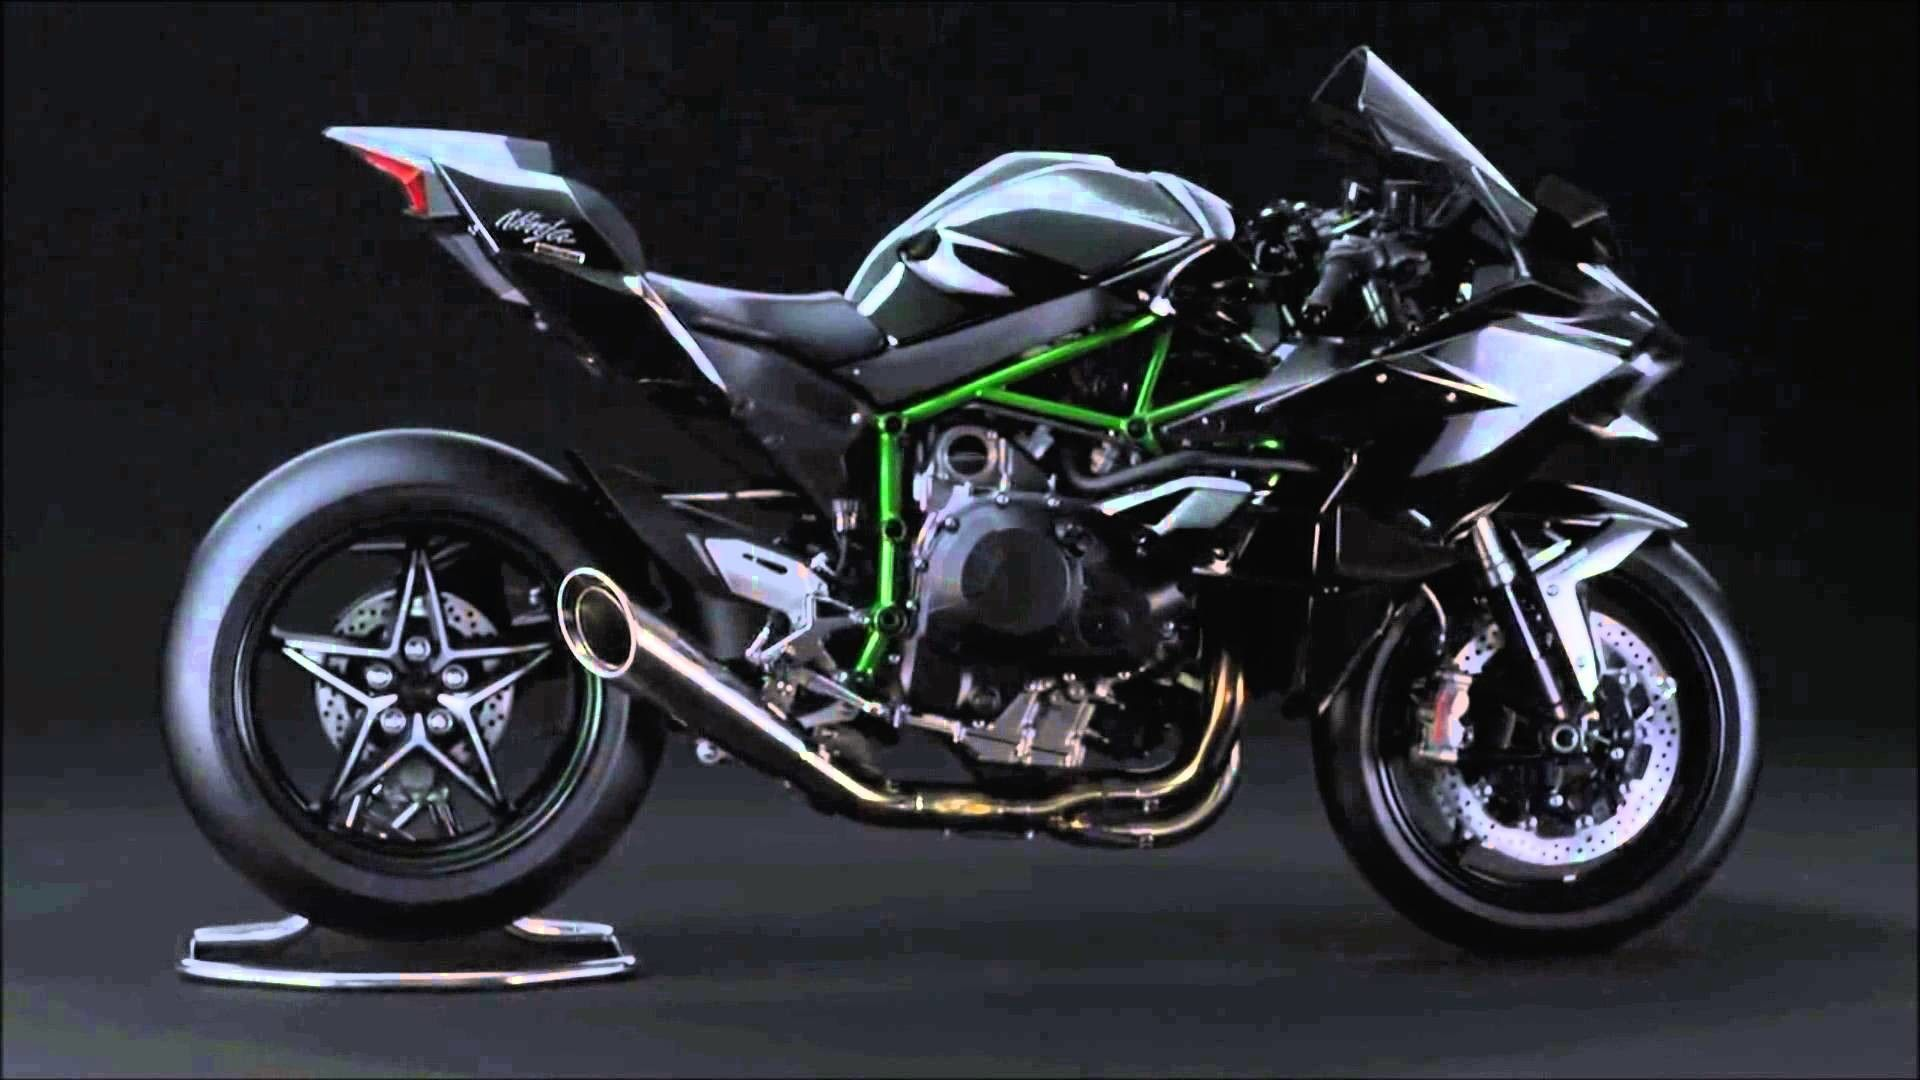 Kawasaki H2r Wallpapers Top Free Kawasaki H2r Backgrounds Wallpaperaccess